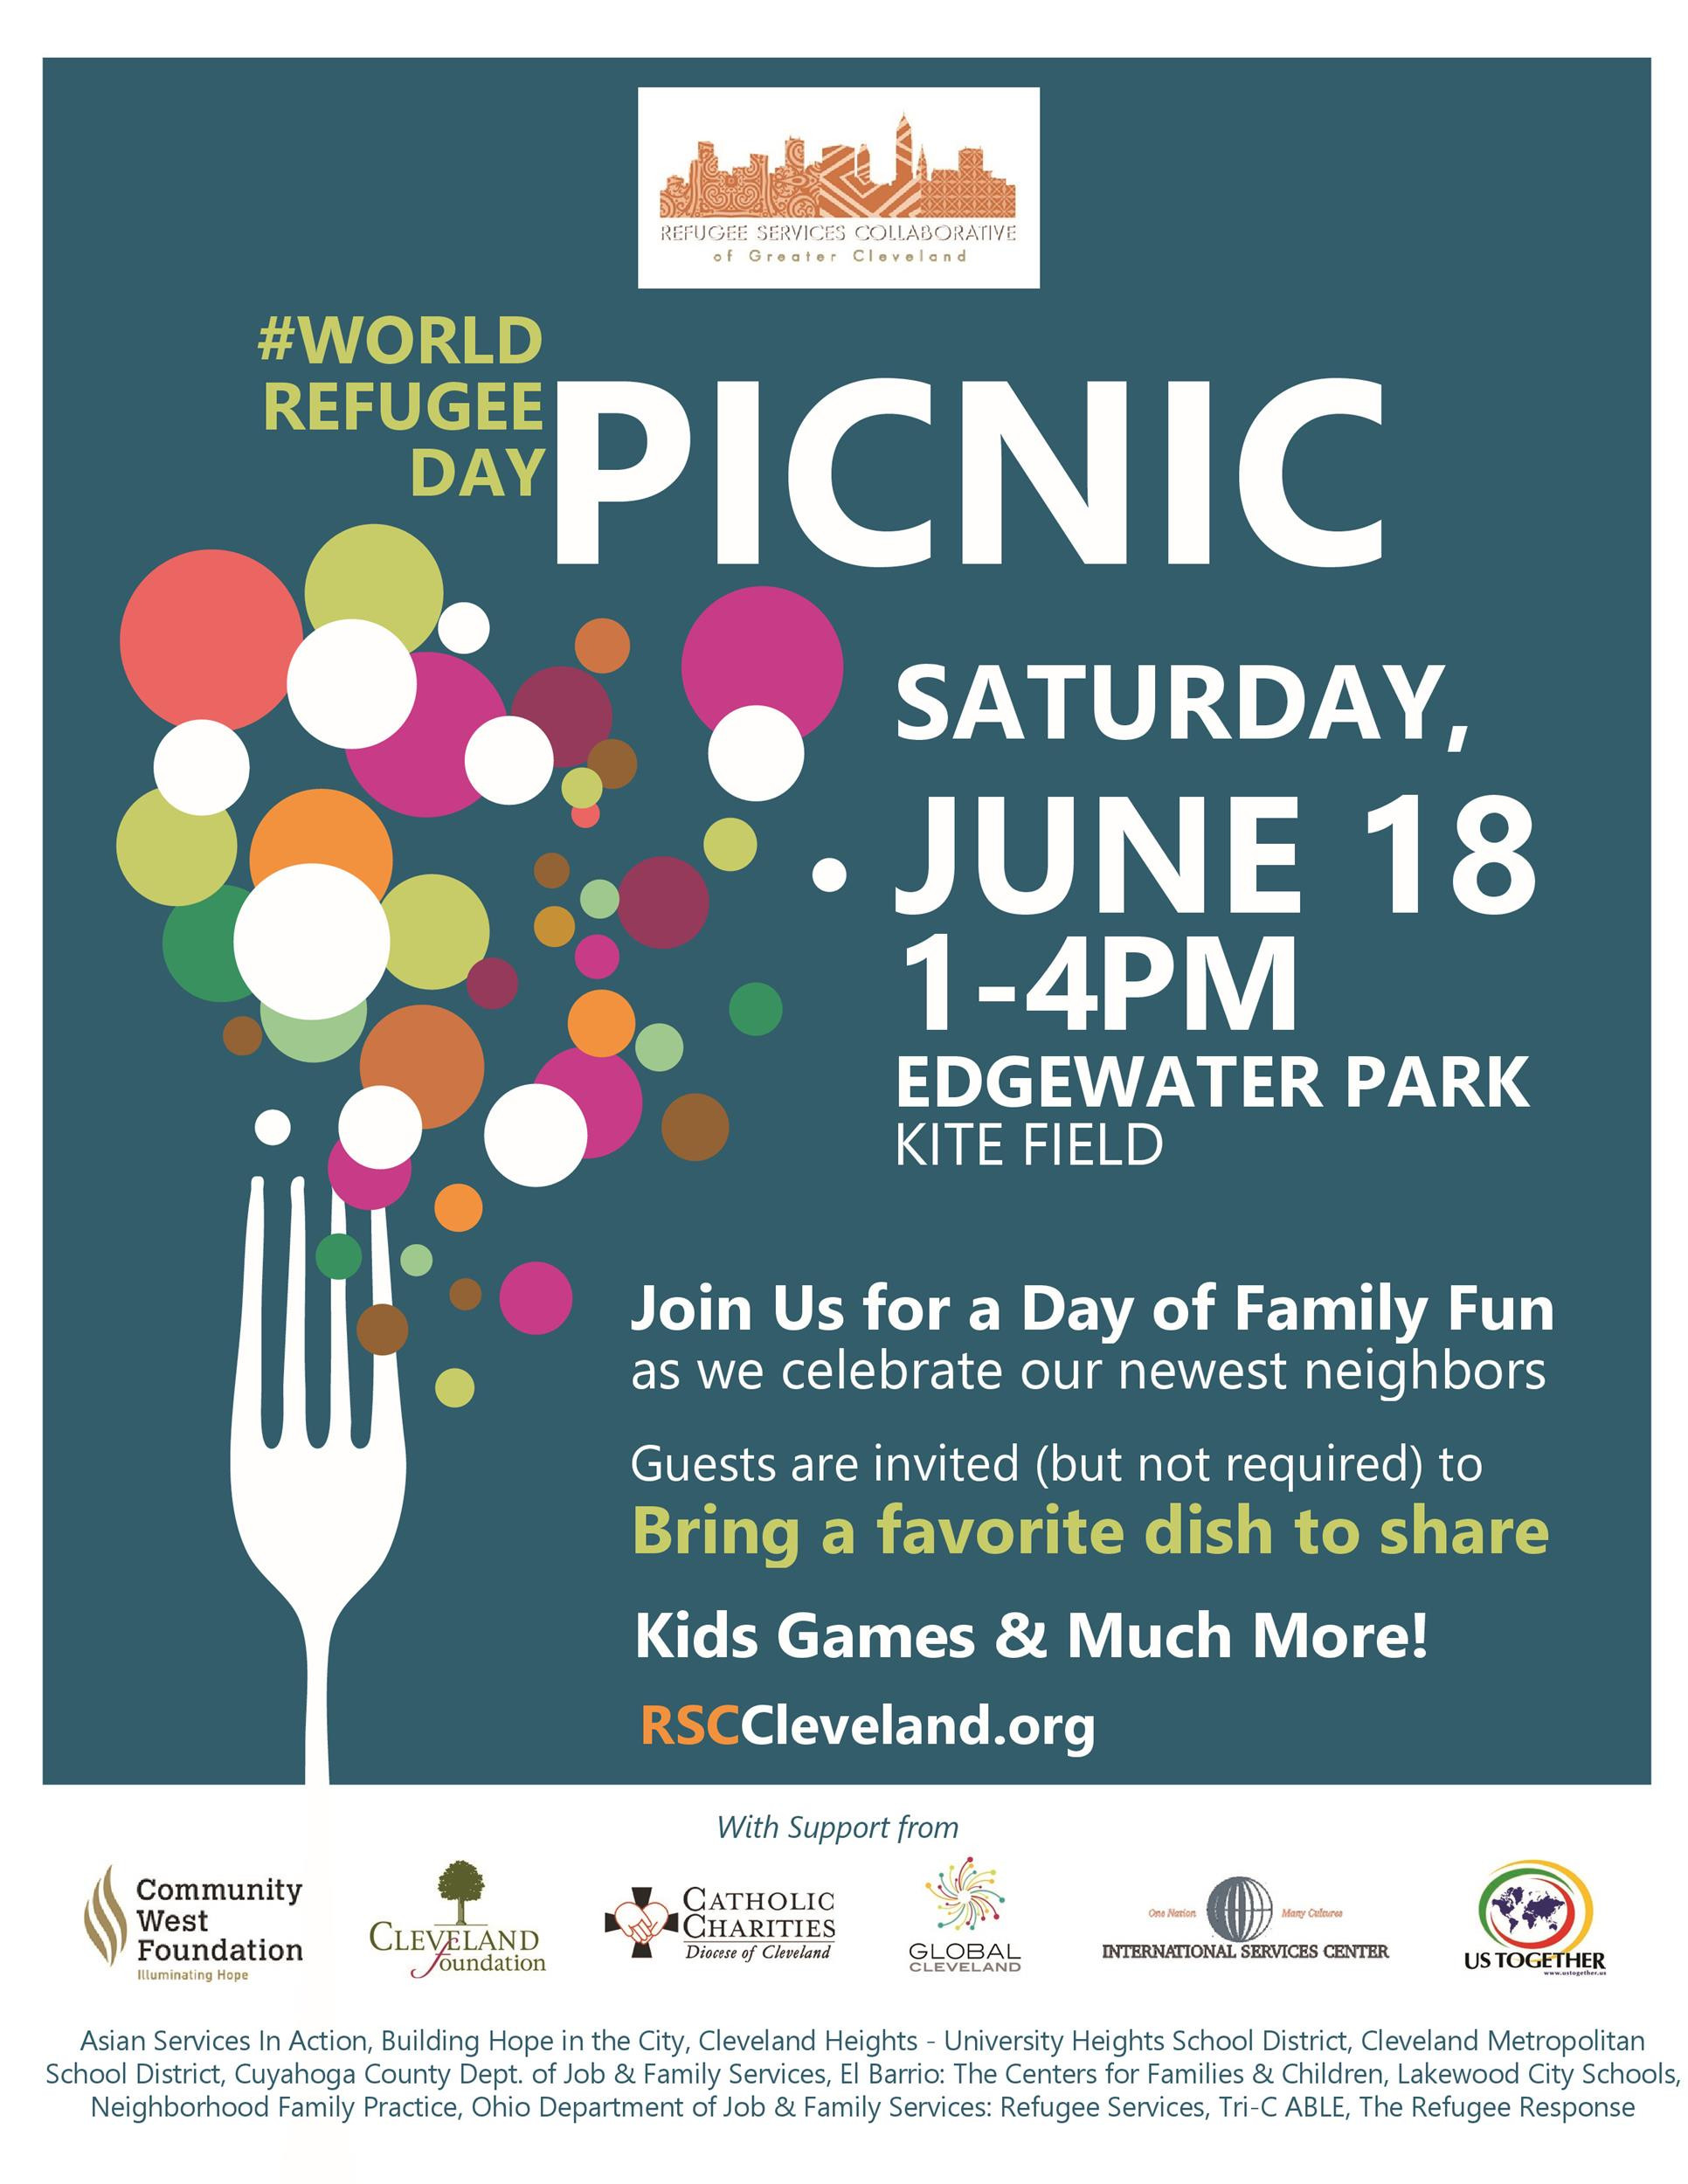 Picnic Flyer Template Free